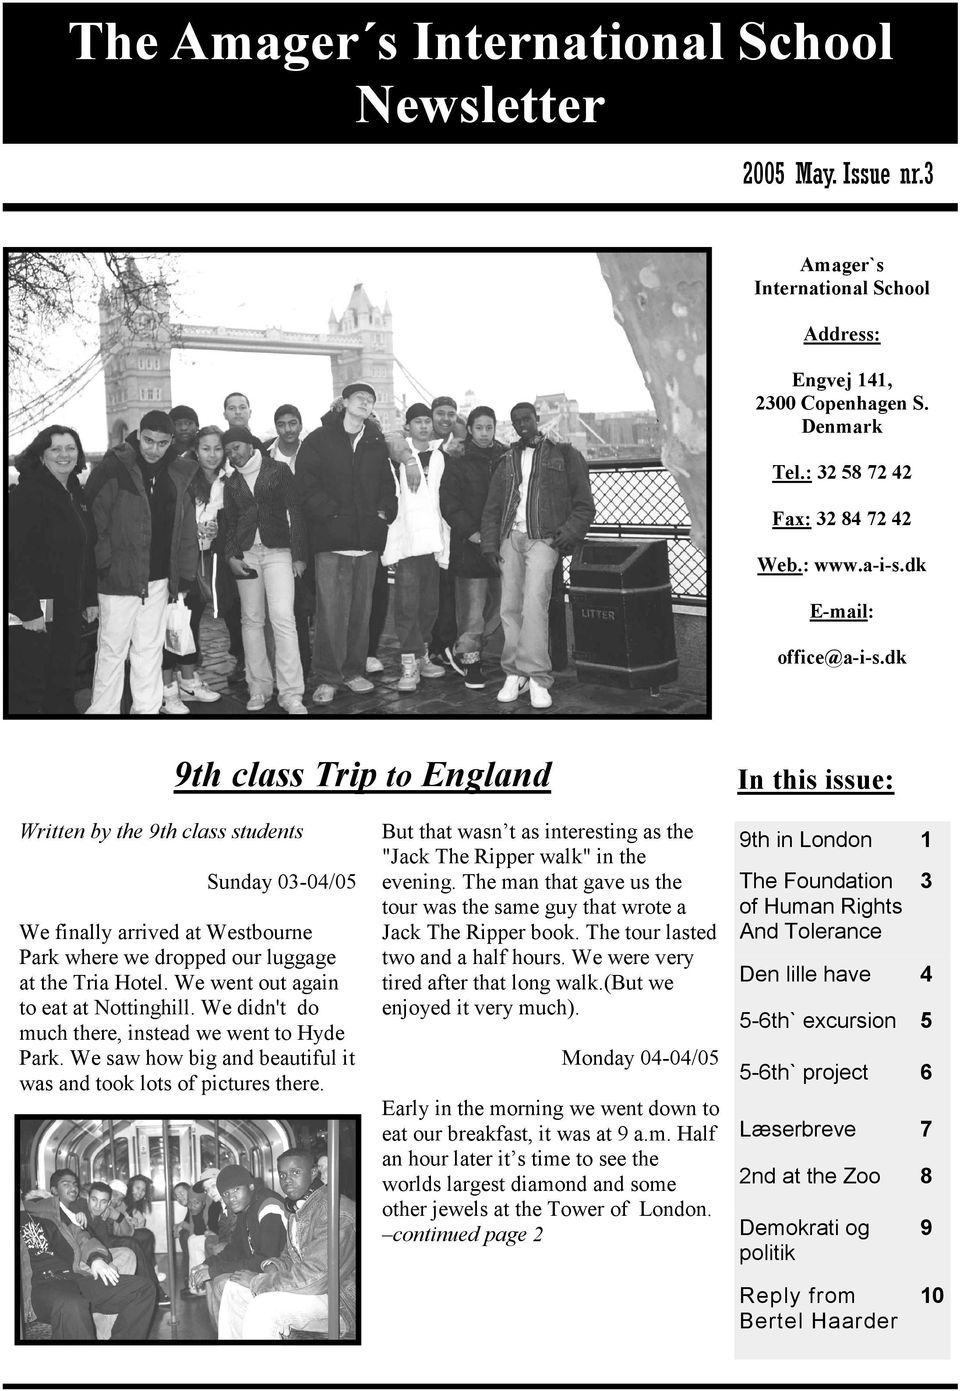 dk 9th class Trip to England In this issue: Written by the 9th class students Sunday 03-04/05 We finally arrived at Westbourne Park where we dropped our luggage at the Tria Hotel.